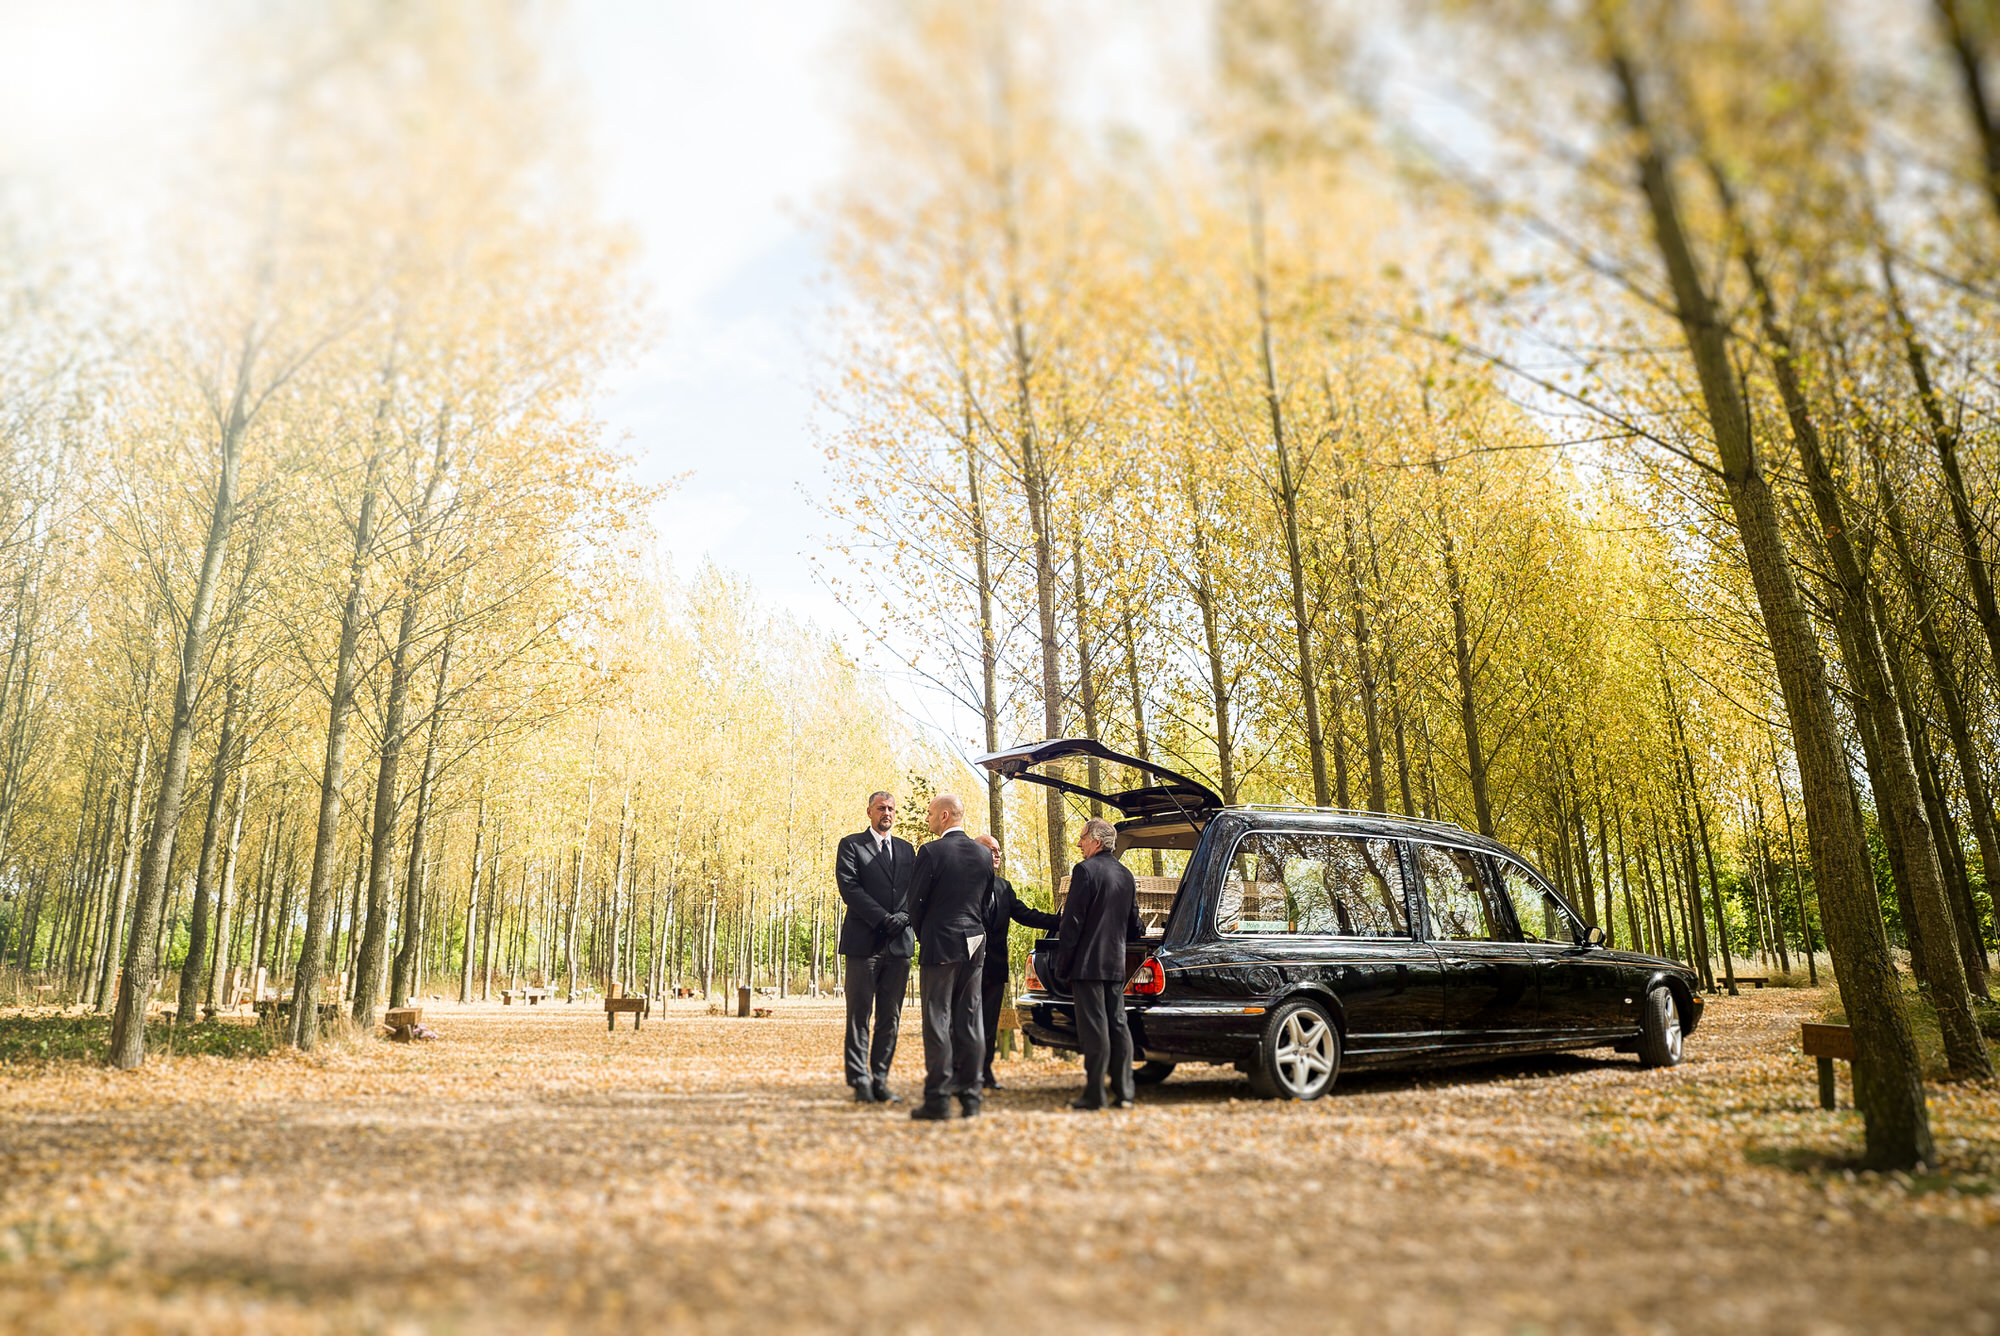 © 2018 - St Albans Woodland Burial Ground, Bedfordshire - Image by Shaun Foulds - UK  Funeral Photographers  and  Funeral Videographers .